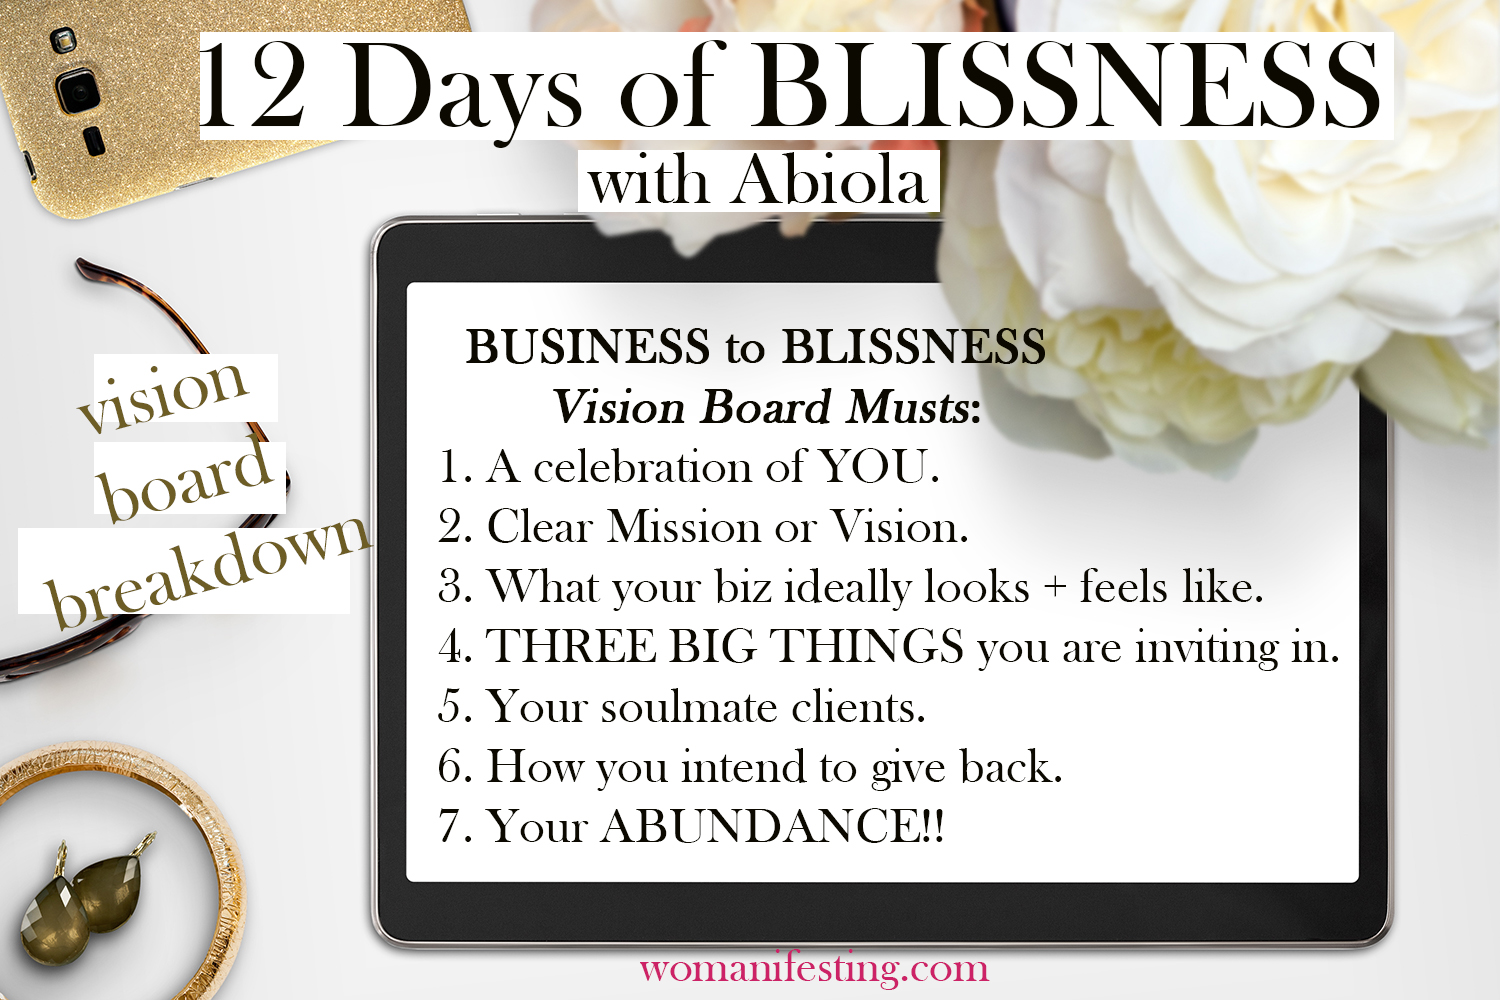 Business Vision Board Template! 12 Days of Blissness [Printable Inspiration]